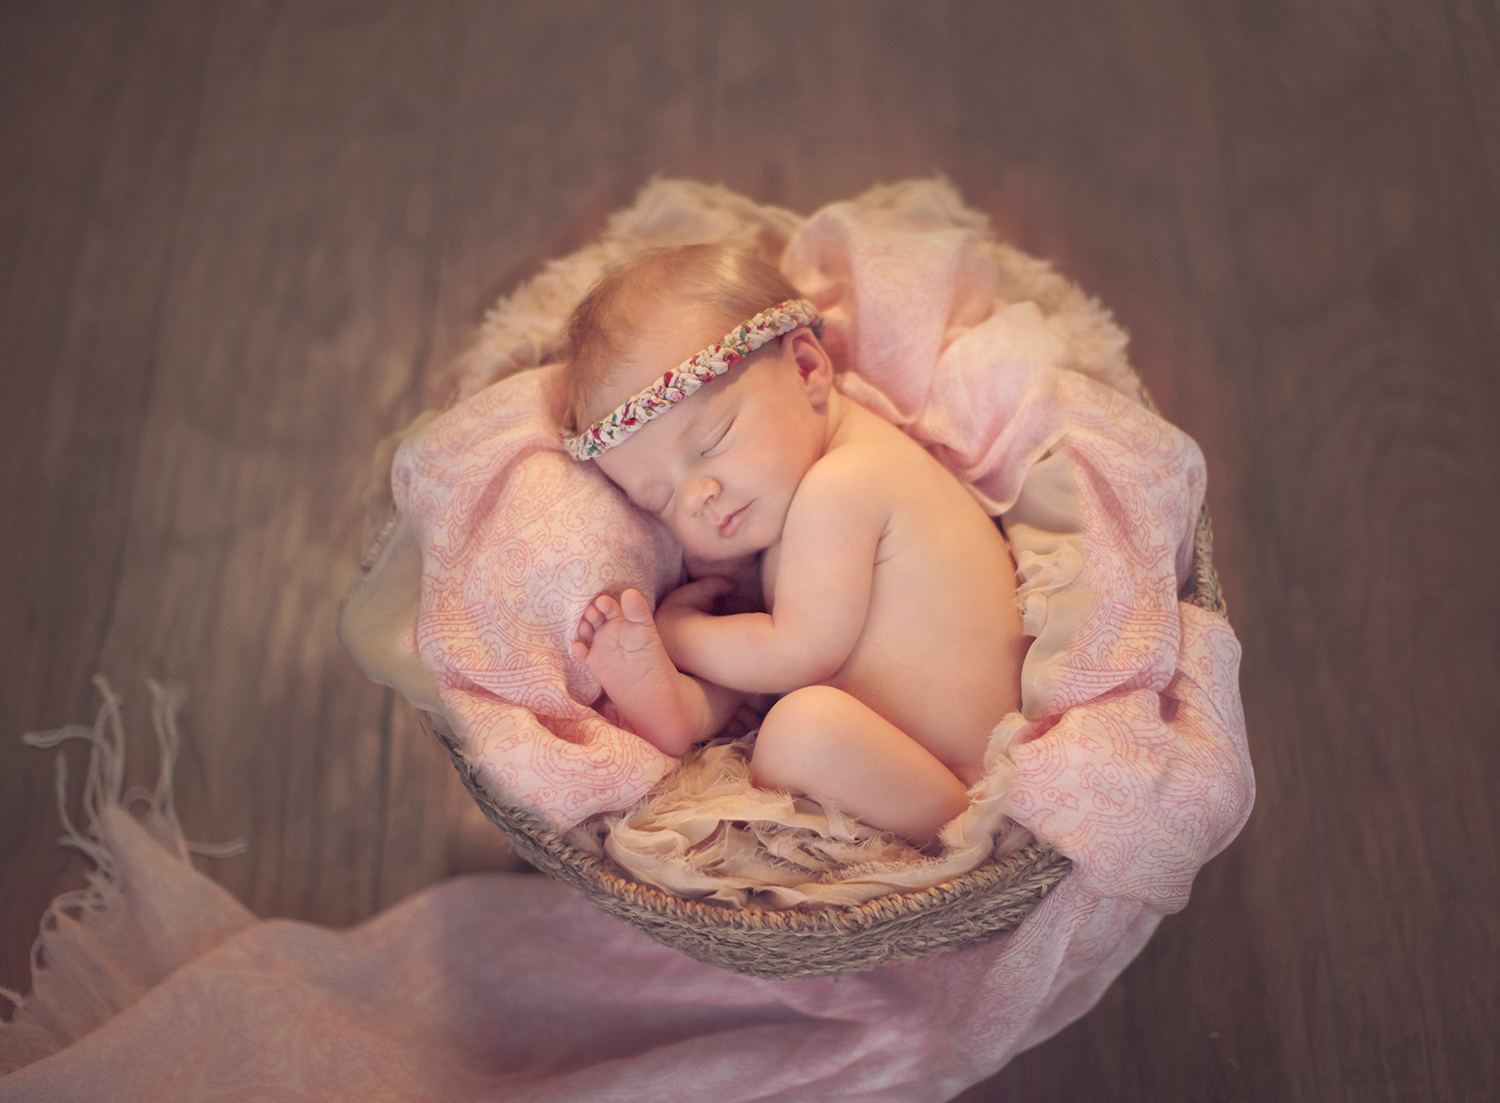 Dena_Rooney_newborn_photographer_0075.jpg